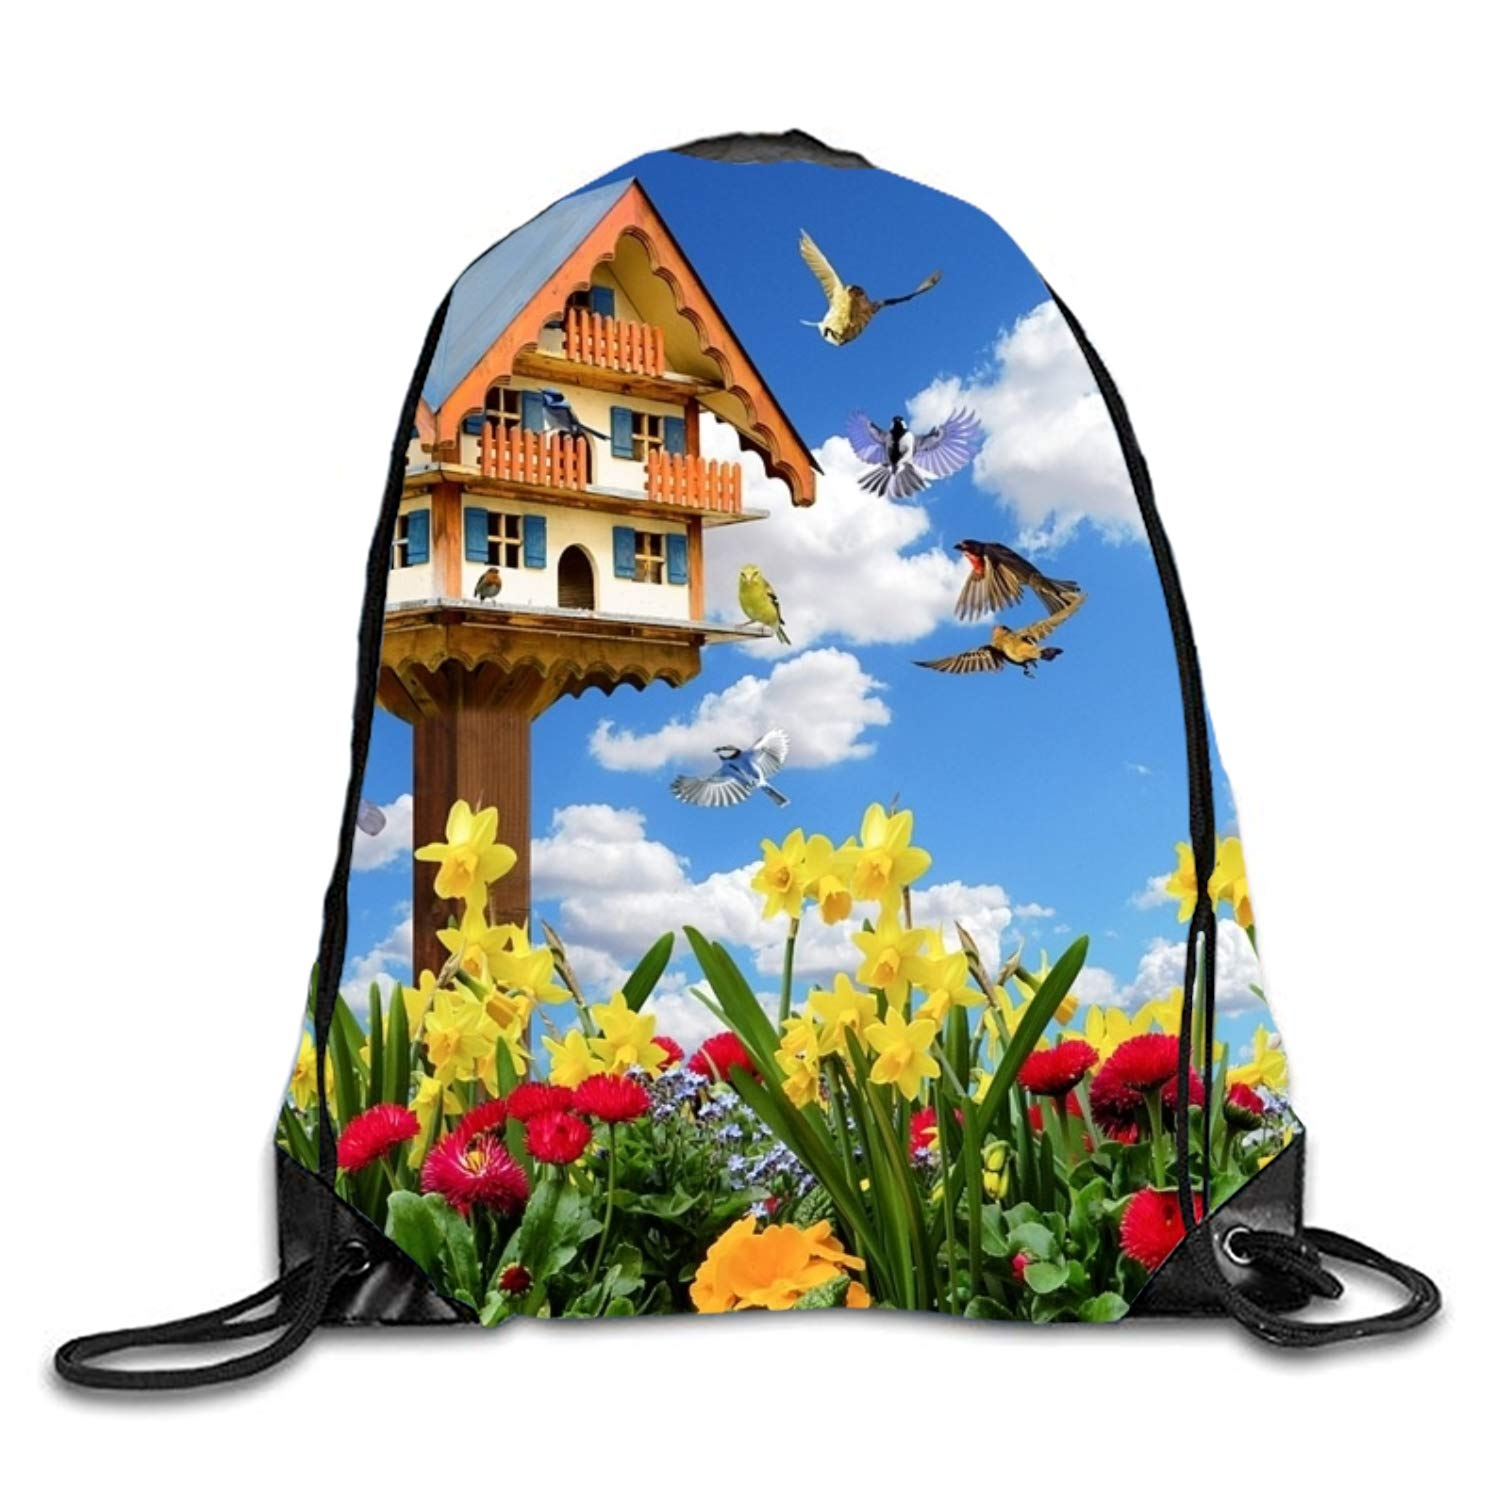 Charactizing A Fine Spring Drawstring Backpack Bag Men Women Sports Gym Sack Sackpack Yoga Dance Travel Daypack